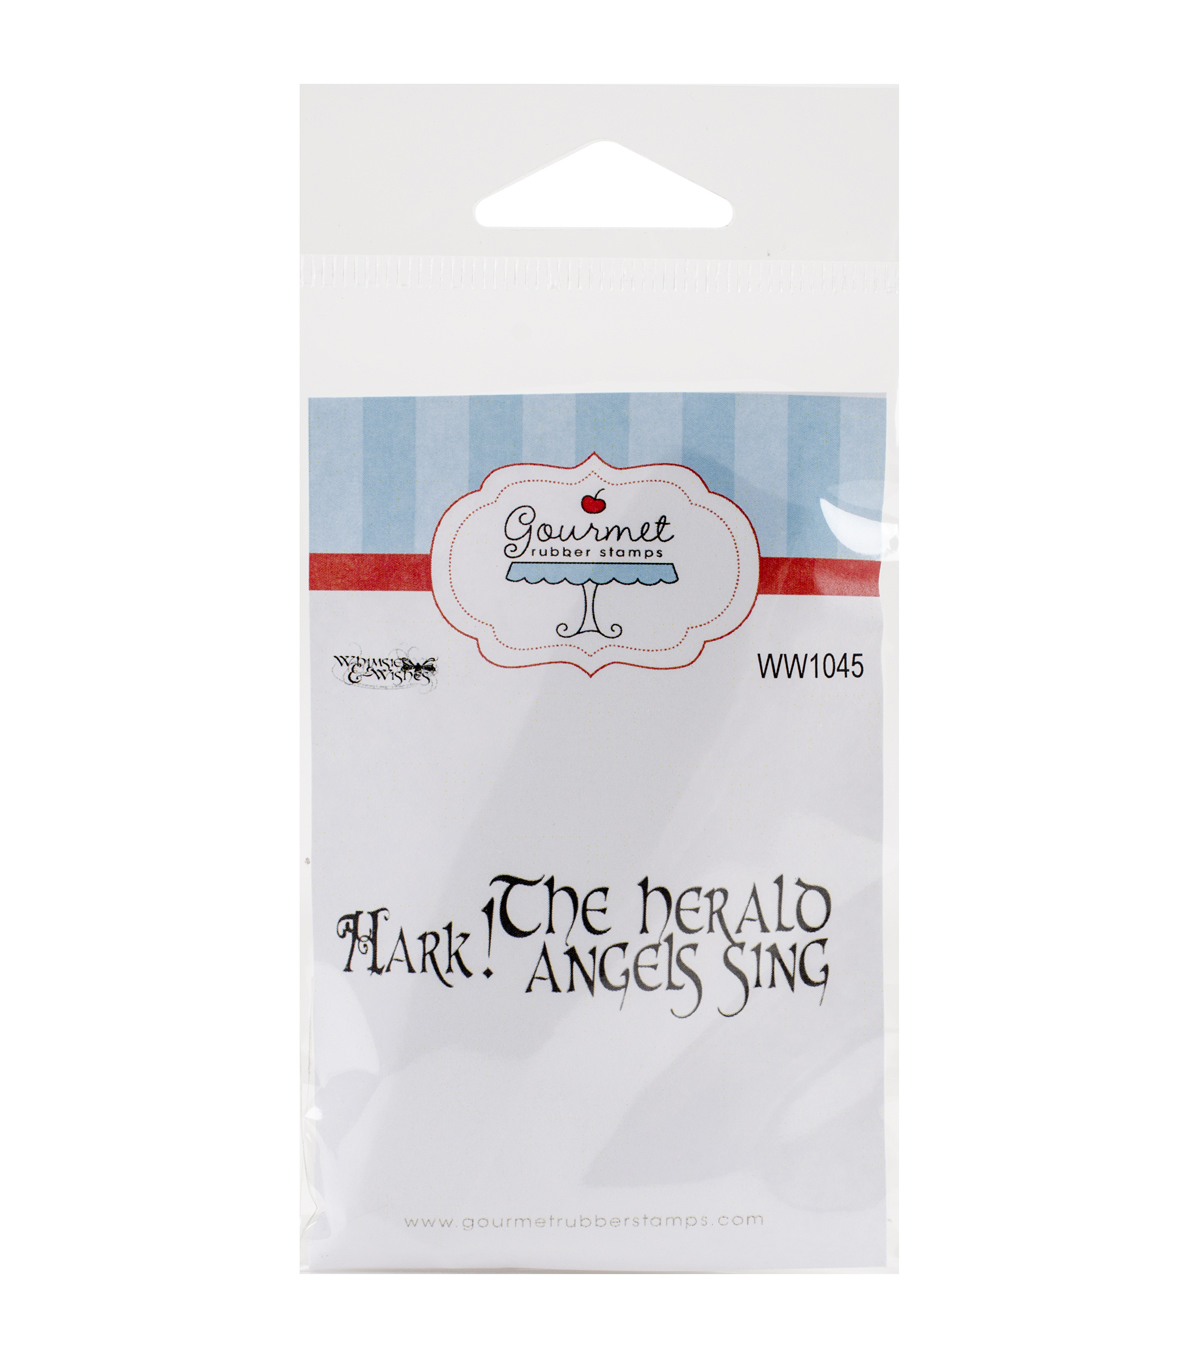 Gourmet Rubber Stamps Cling Stamps-Hark! The Herald Angels Sing